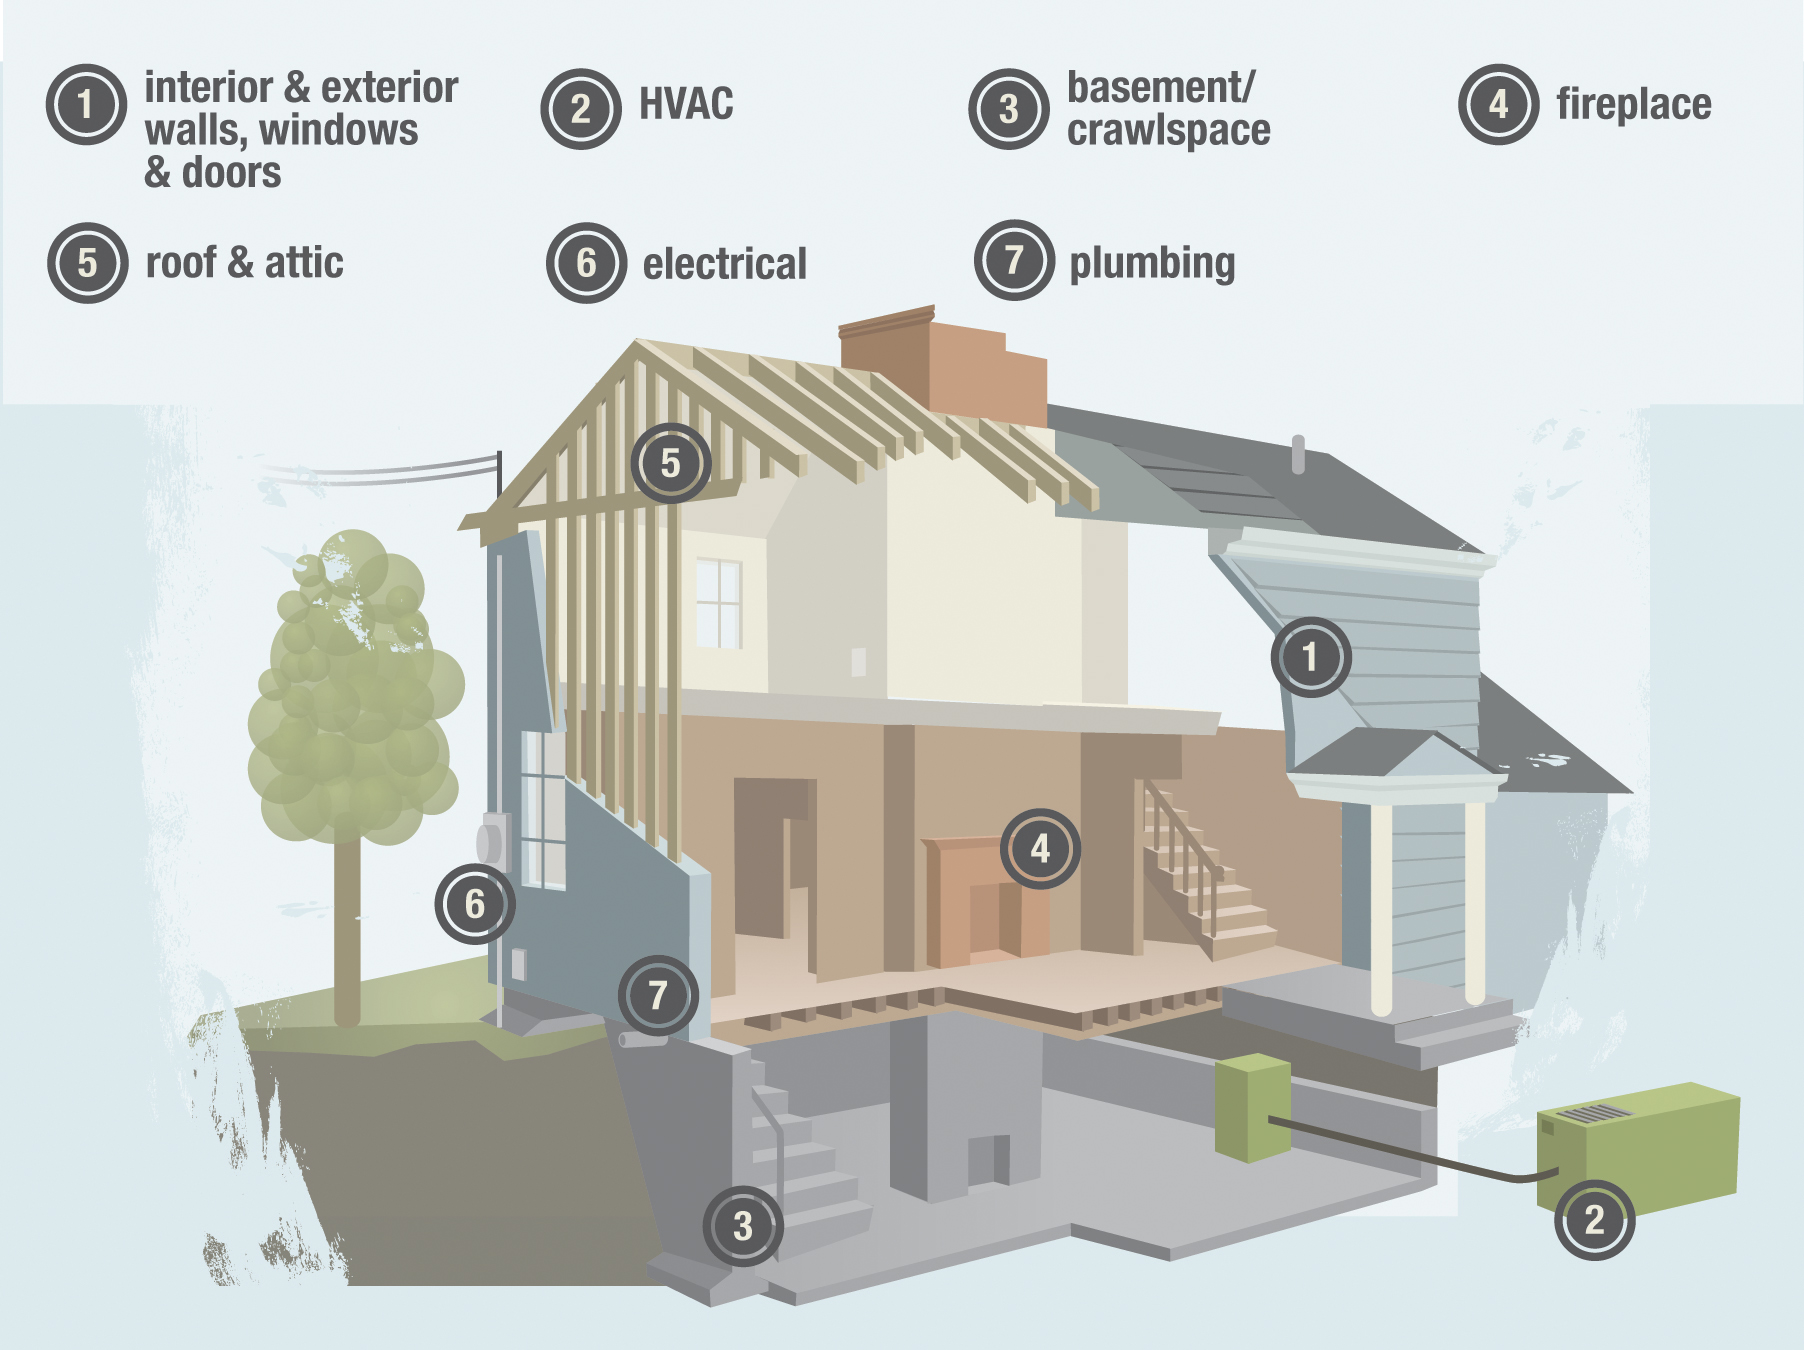 Home Inspection Components